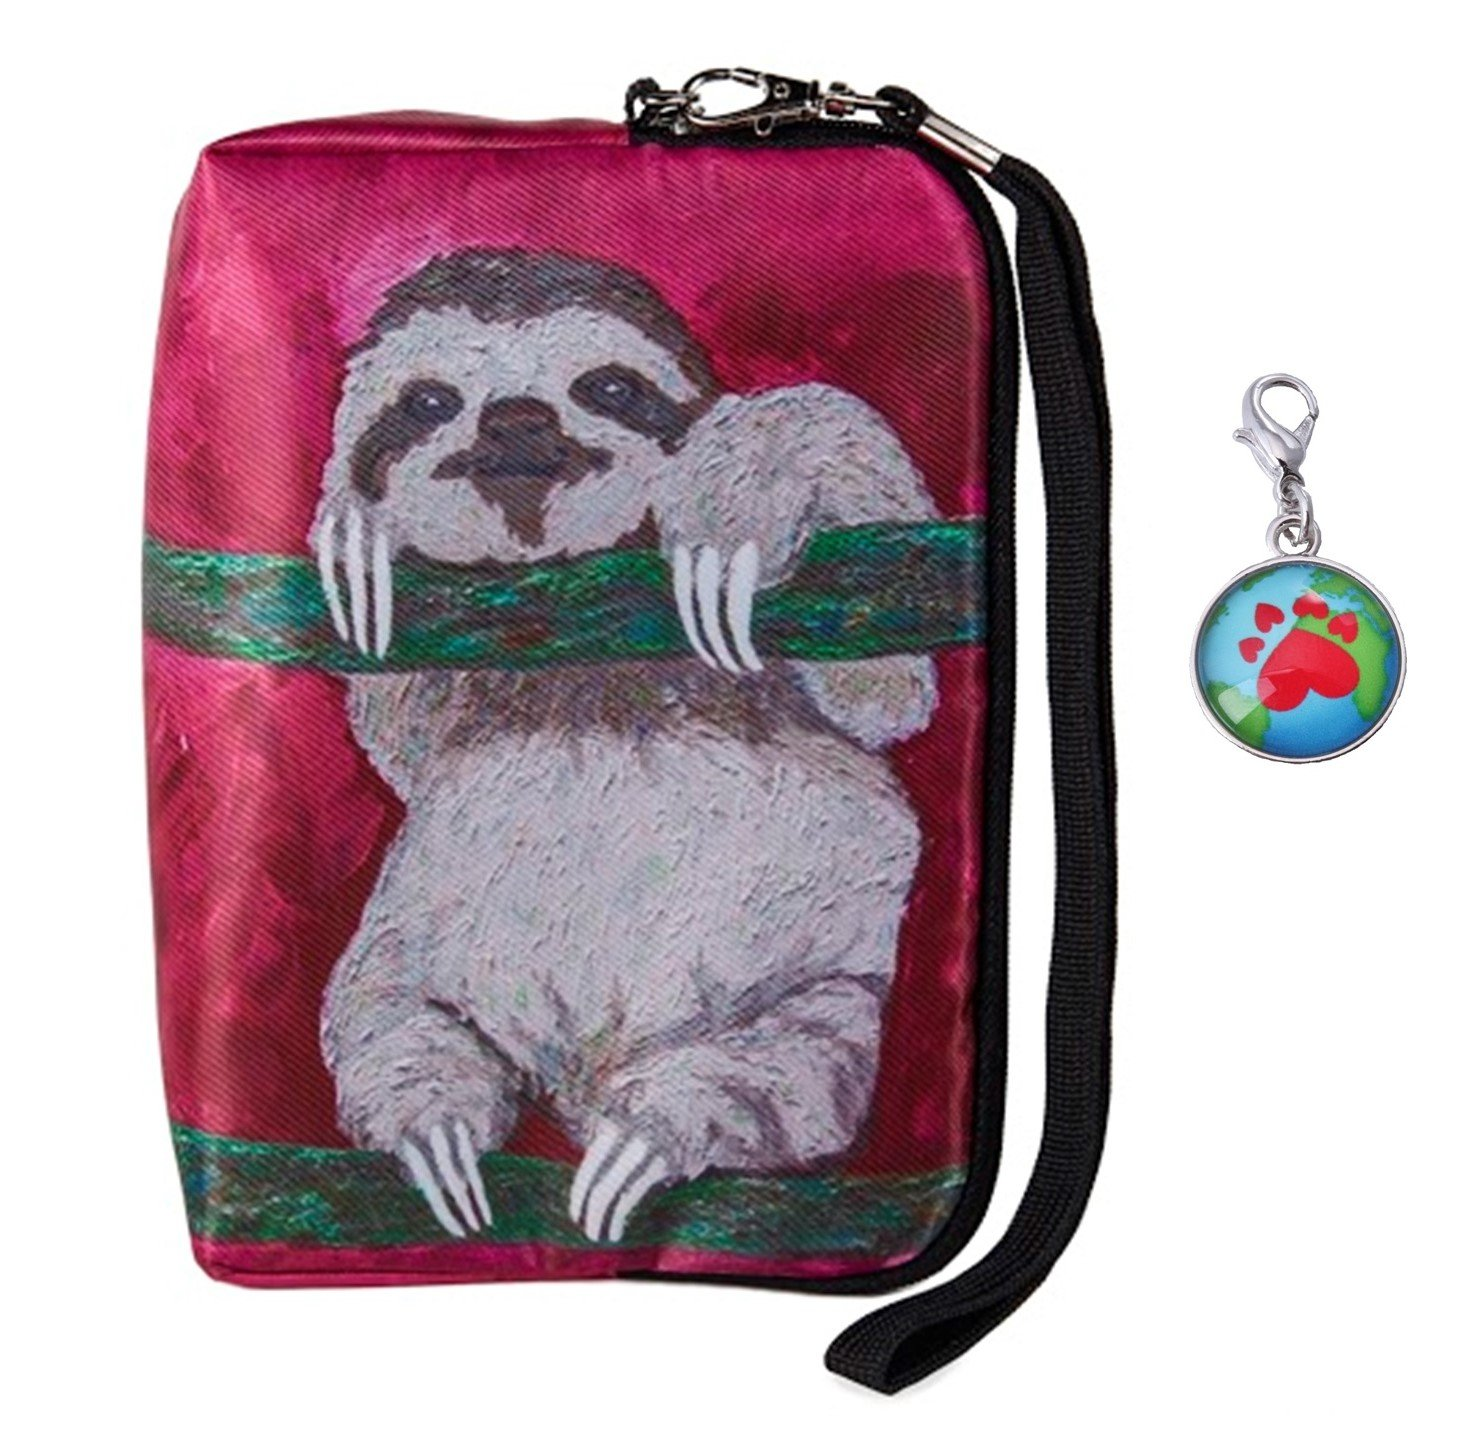 Sloth Wristlet Zip-top with Detachable Strap and Charm - Vegan - From My Painting, Leisurely Life